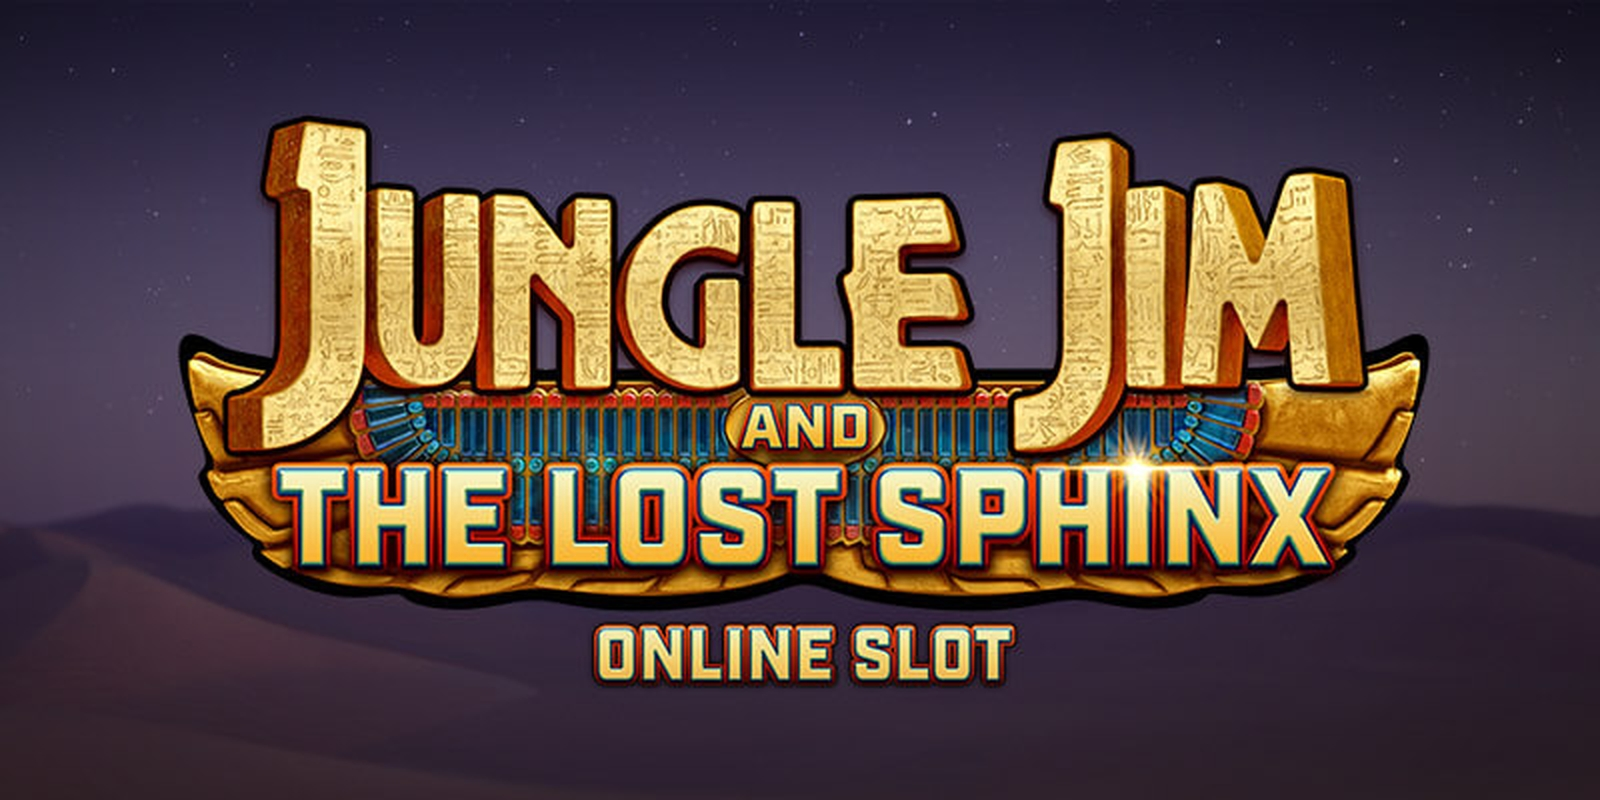 The Jungle Jim And The Lost Sphinx Online Slot Demo Game by Stormcraft Studios